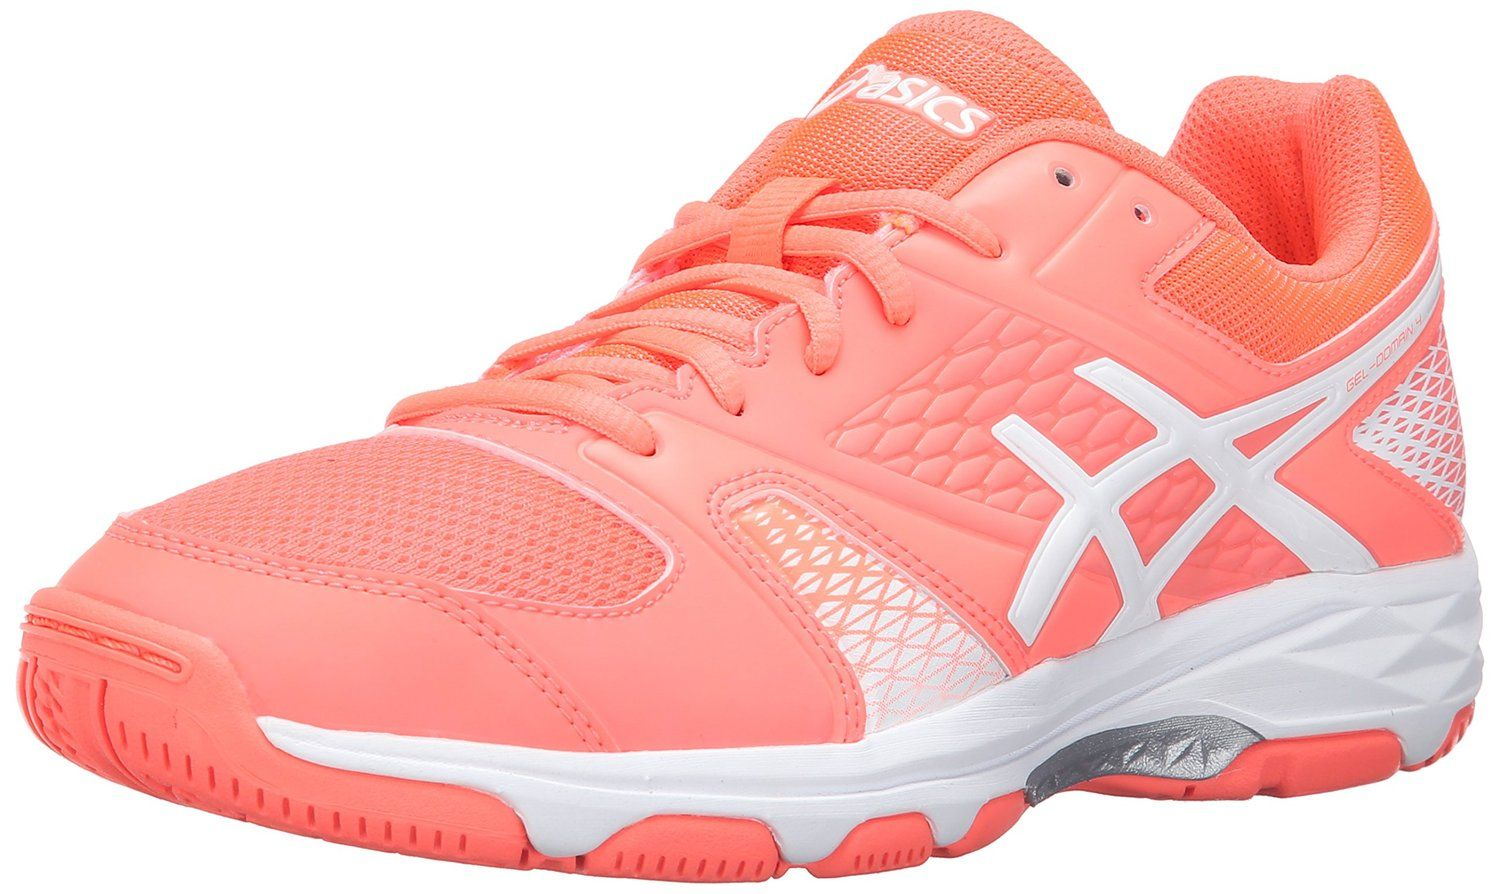 Asics Women S Gel Domain 4 Volleyball Shoe Read More Reviews Of The Product By Visiting The Link On T Best Volleyball Shoes Volleyball Shoes Trending Shoes